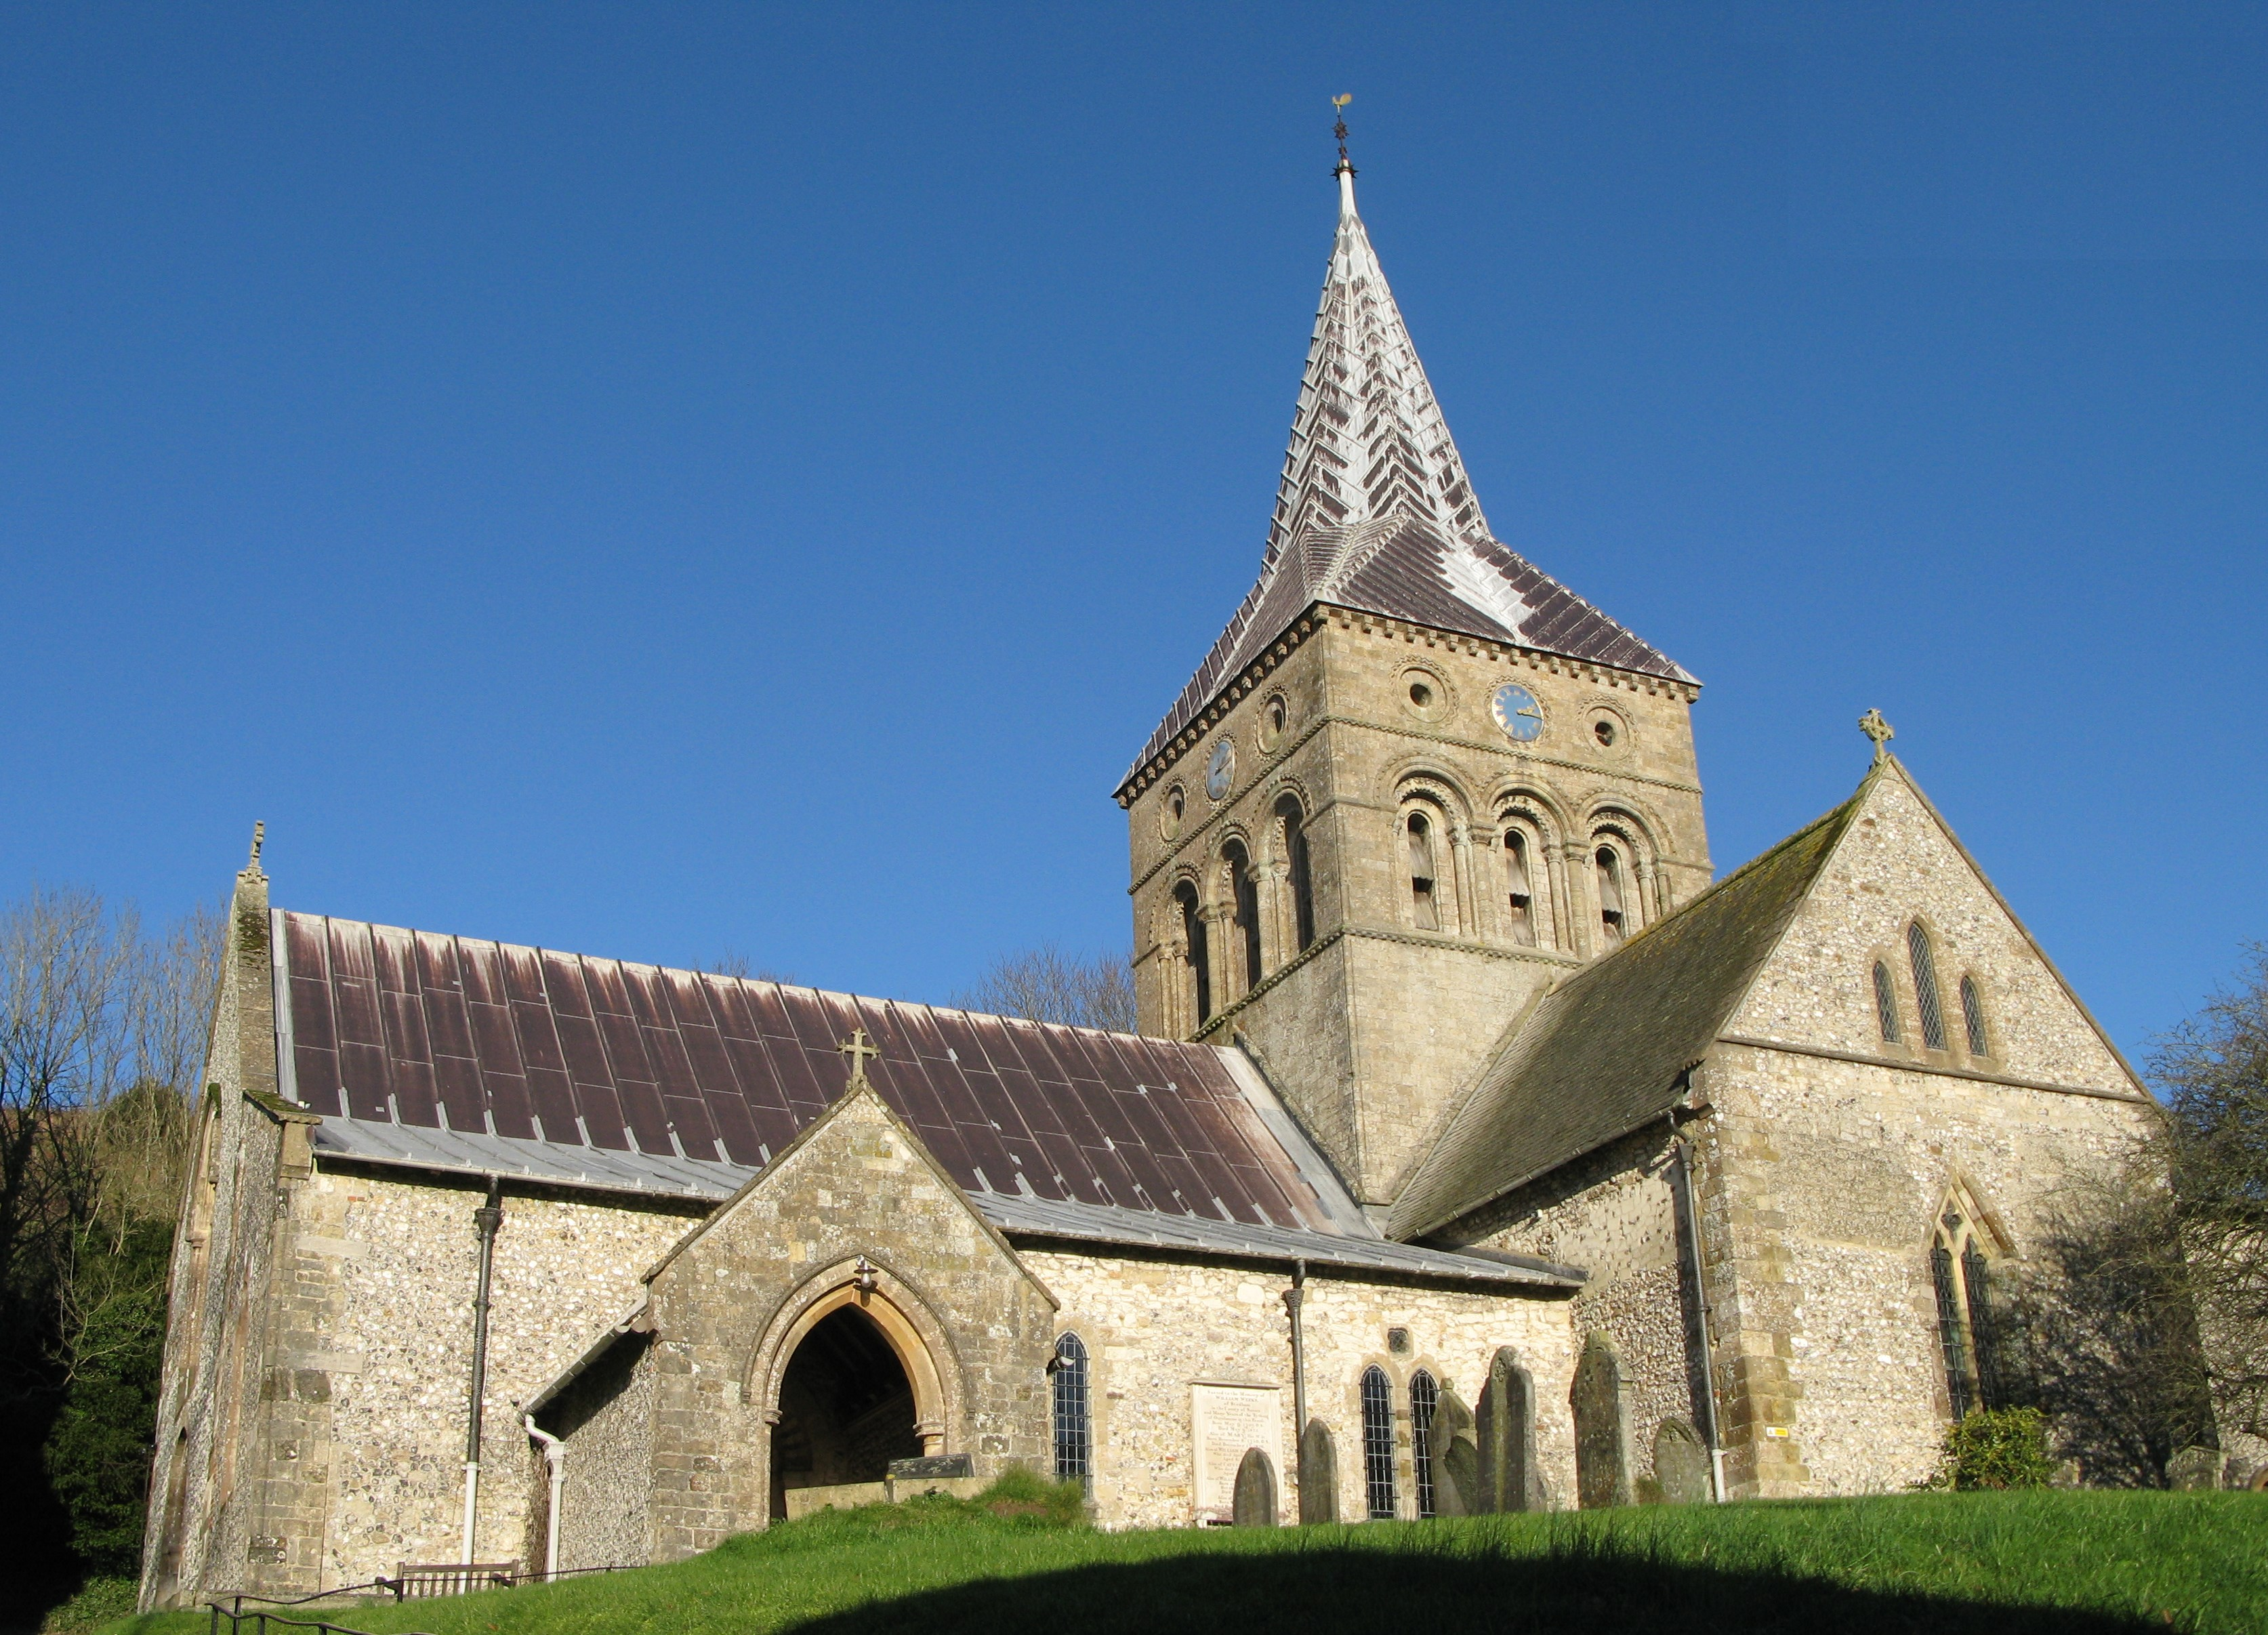 Church of All Saints, East Meon, Hampshire